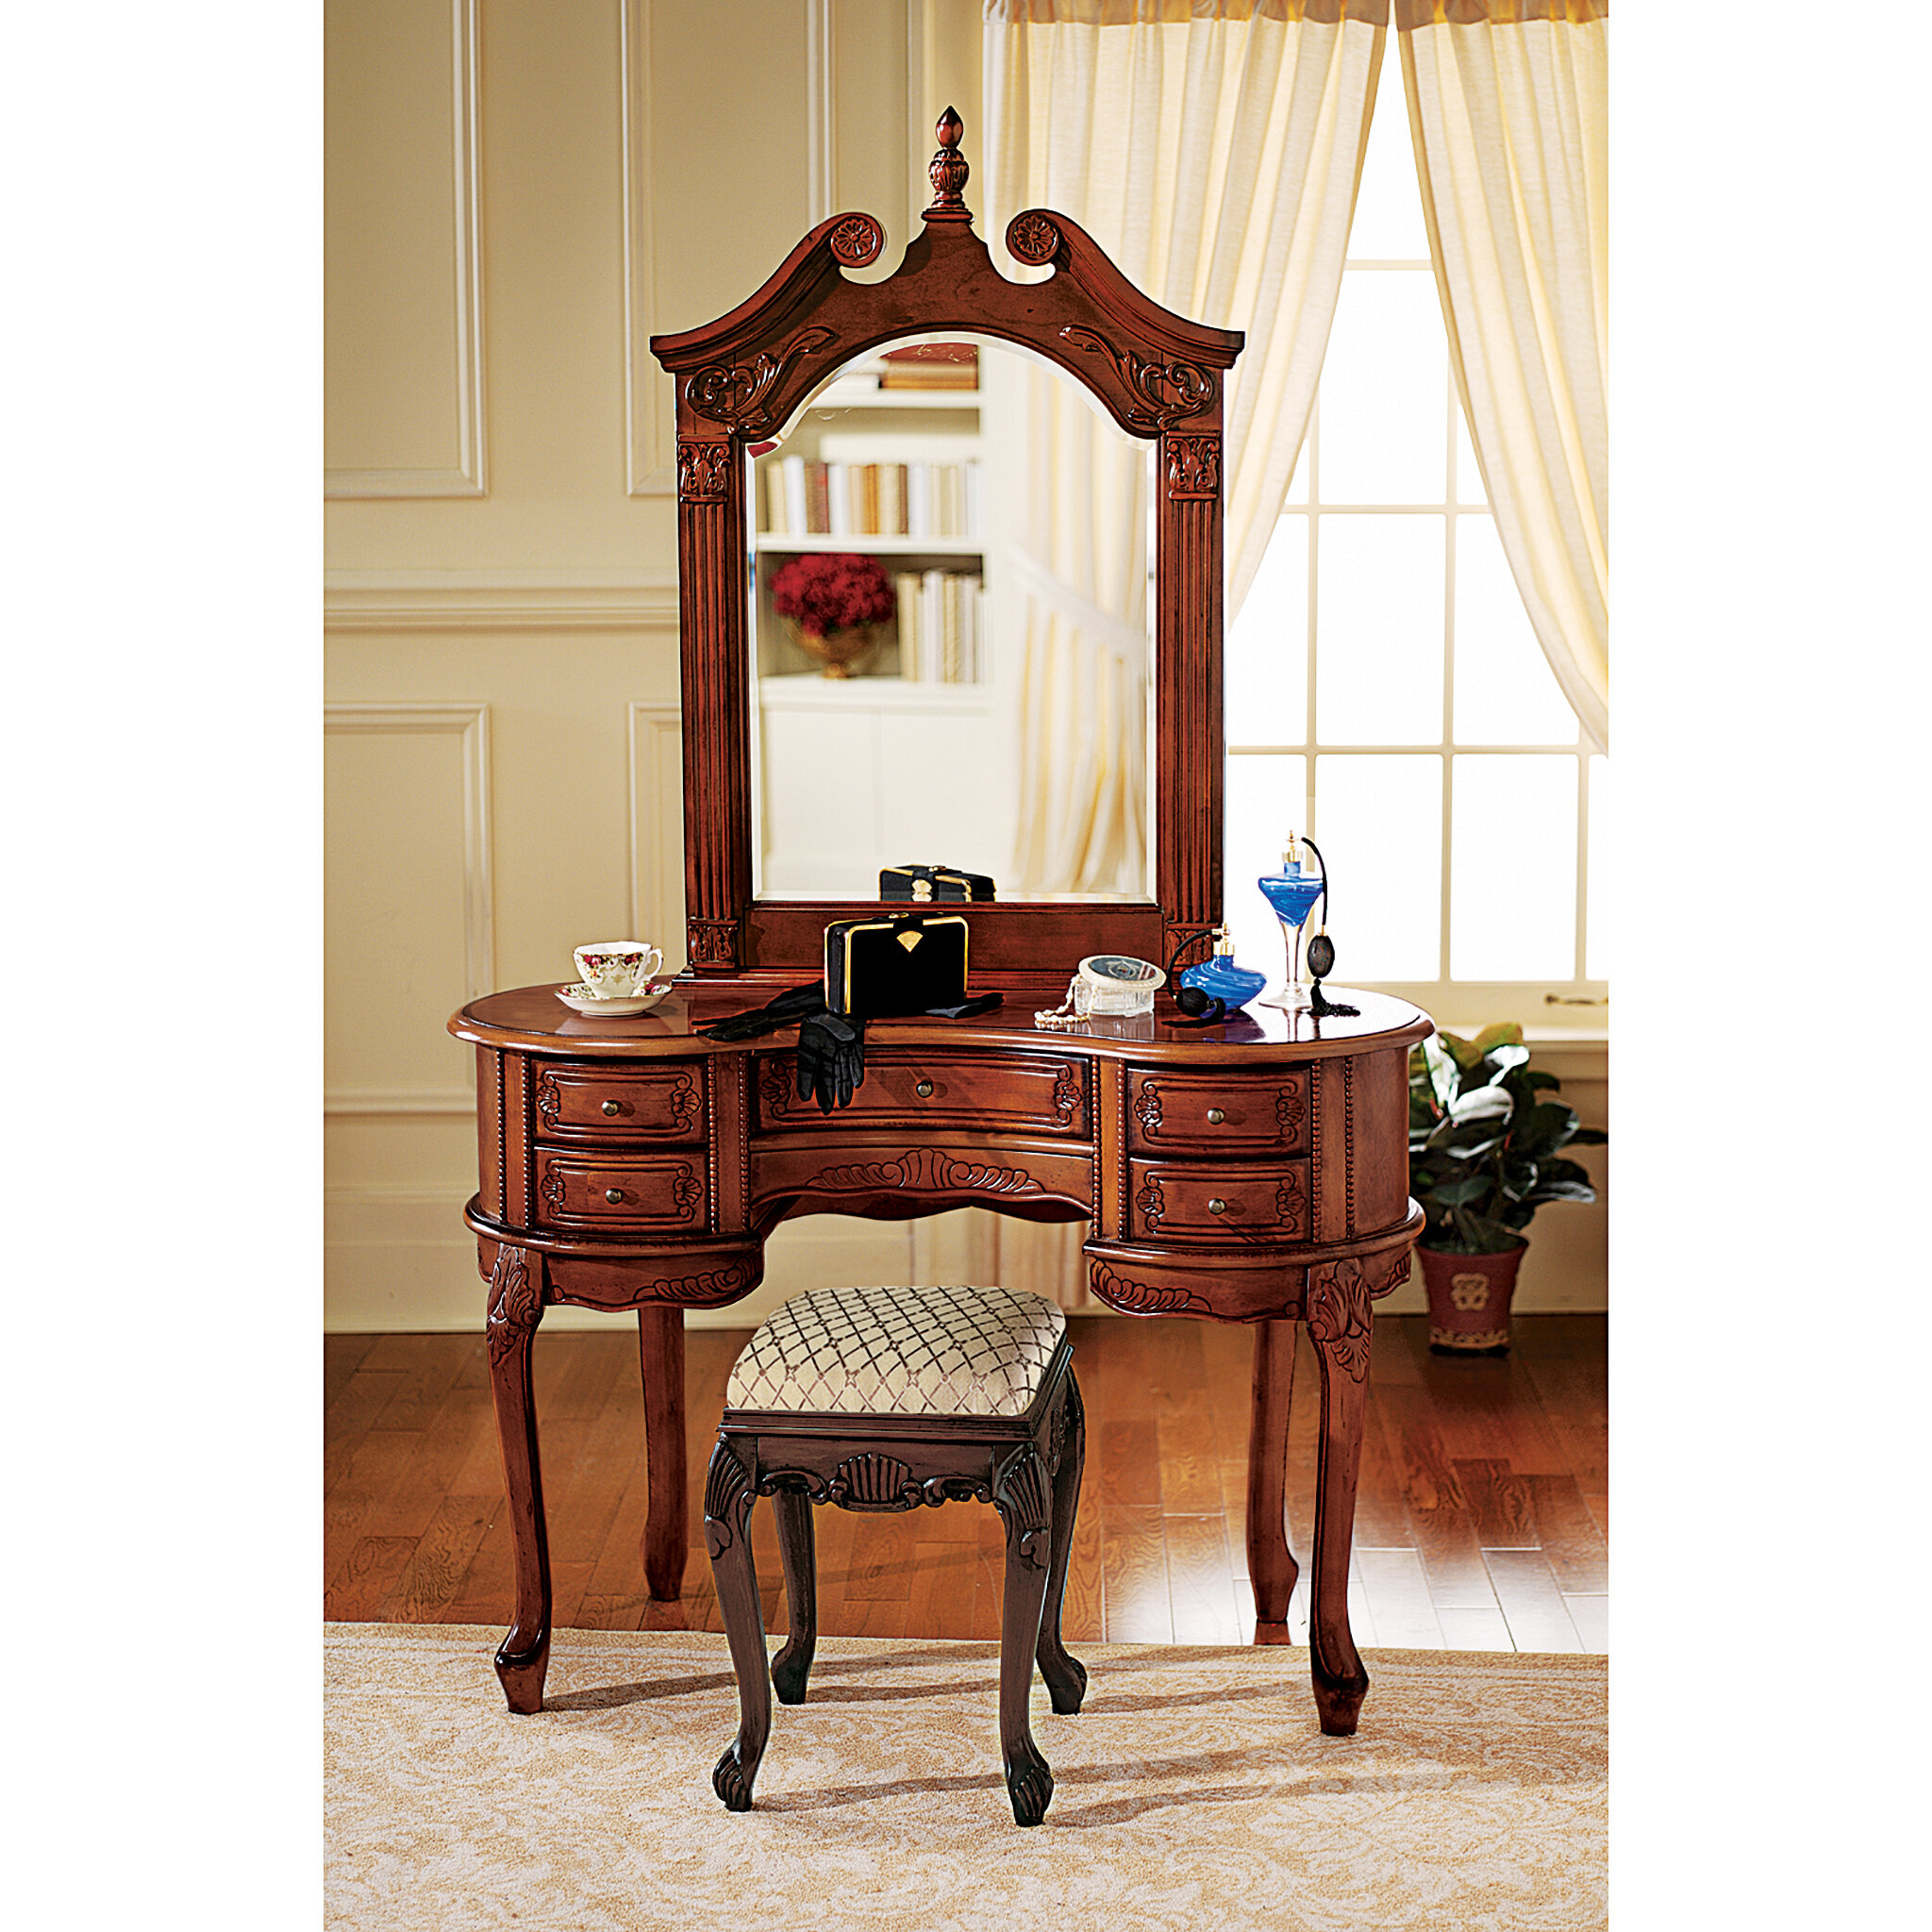 Design Toscano Queen Anne Vanity With Mirror Reviews Wayfair